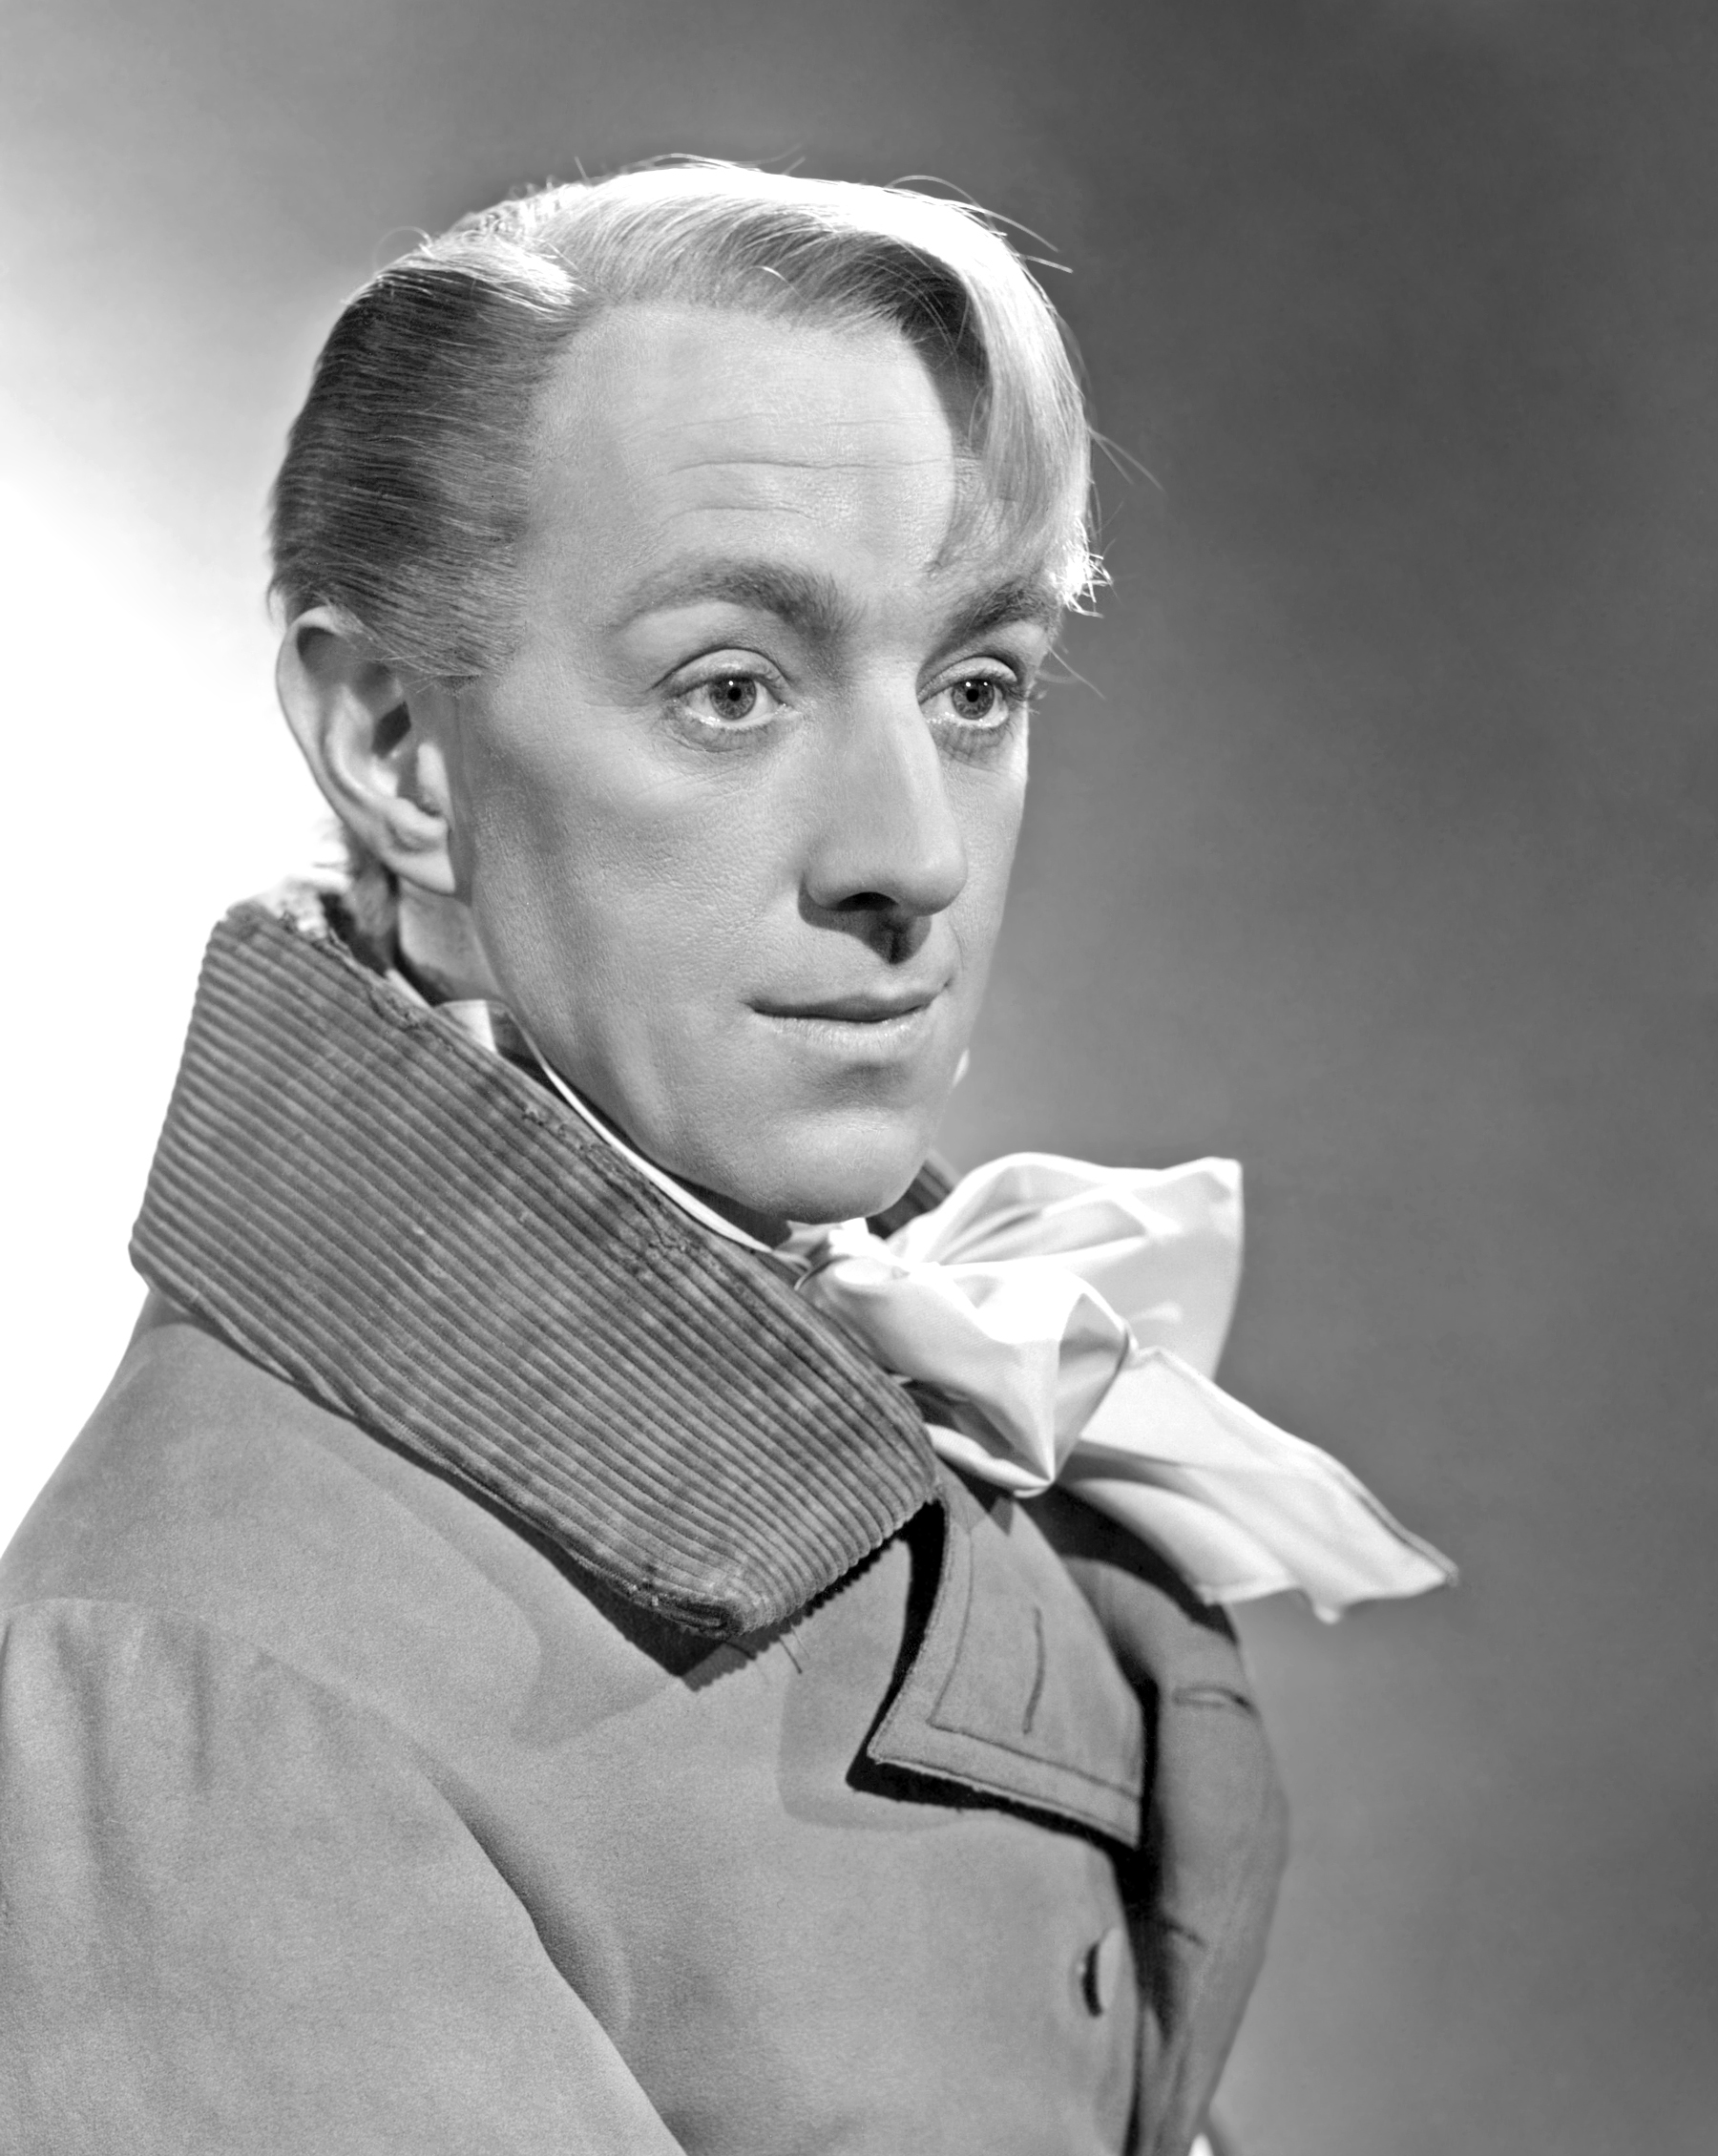 alec guinness star warsalec guinness as fagin, alec guinness rey, alec guinness biography, alec guinness star wars, alec guinness young, alec guinness death, alec guinness genuine class, alec guinness net worth, alec guinness wikipedia, alec guinness height, alec guinness ww2